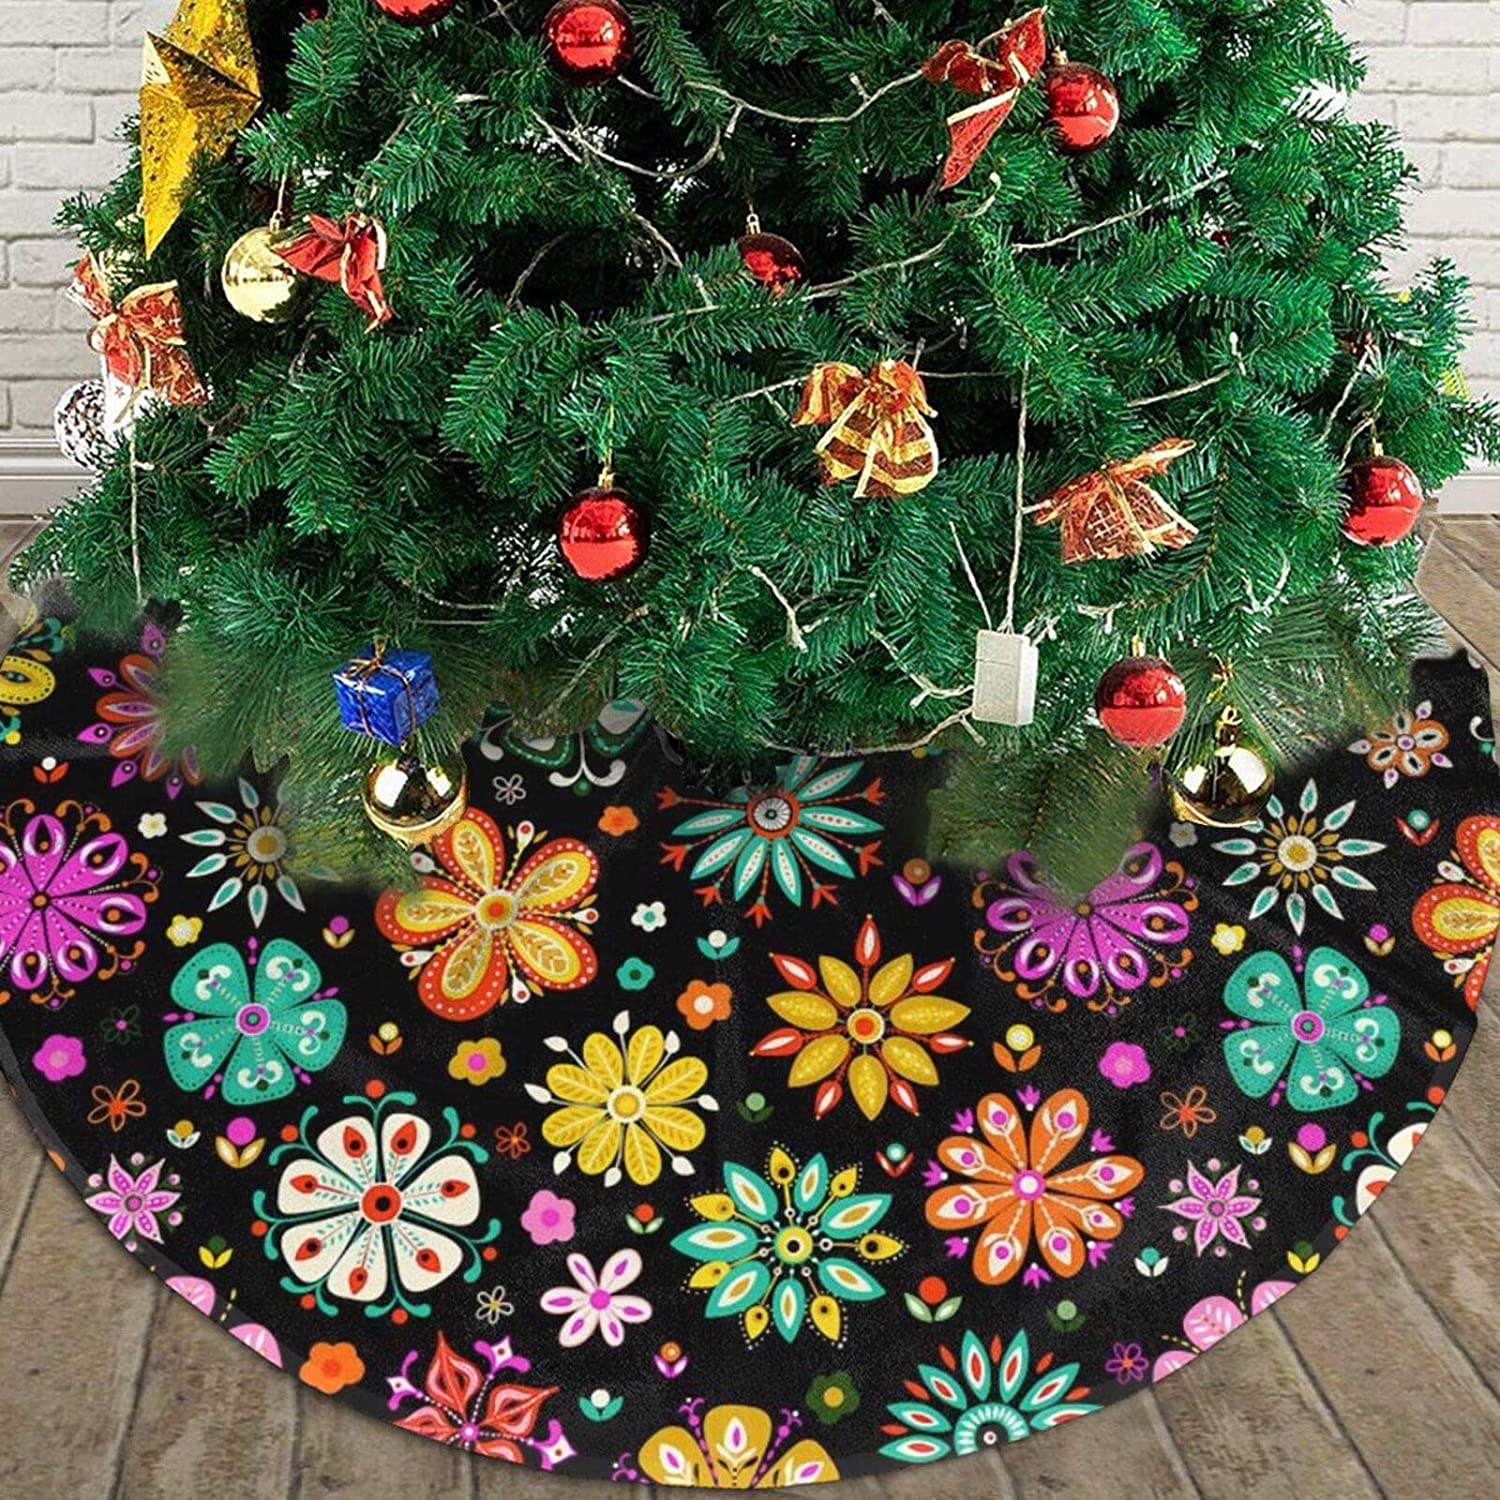 JooKrrix Soft Merry Christmas Tree Skirt, Good to Touch Xmas Tree Ornament, Colorful Flora Flowers Patterns, Table Top Tree Mat Cover for New Year Festive Holiday,Christmas Holiday D¨¦cor,48inch